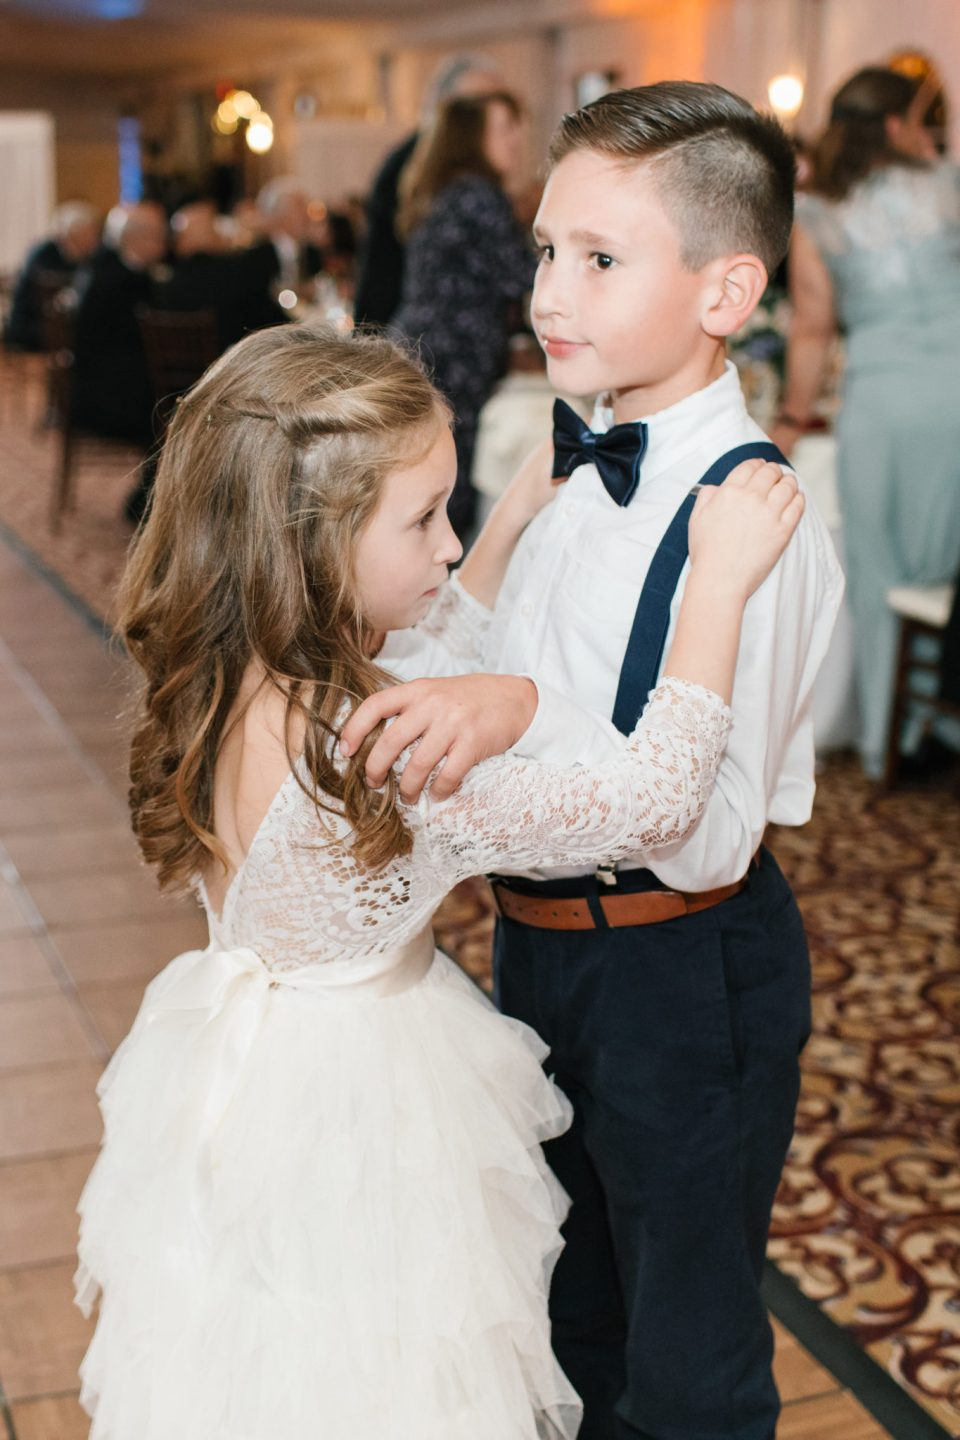 kids dancing during wedding reception photographed by Ashley Mac Photographs